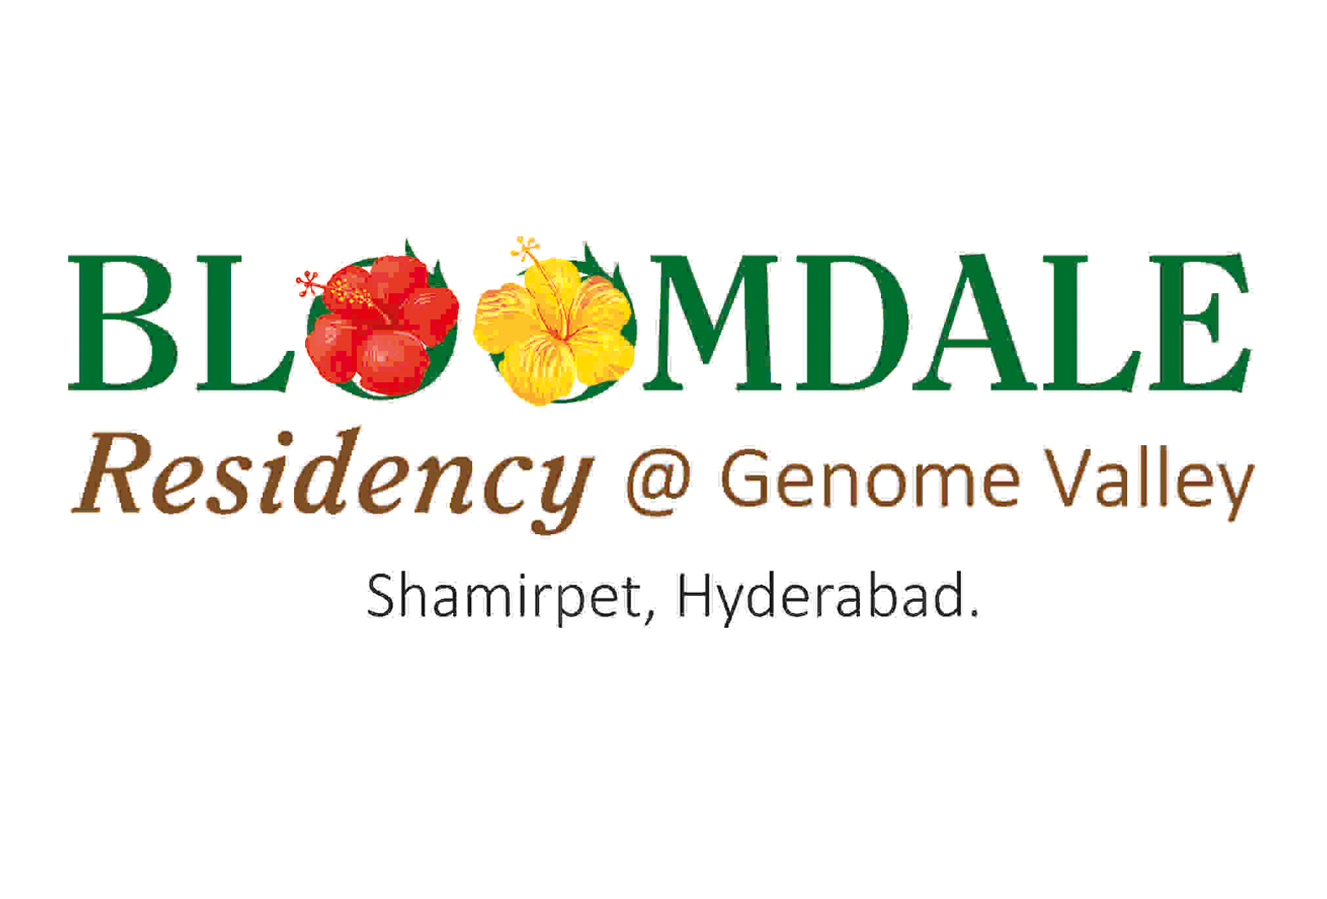 Bloomdale Residency at Genome Valley